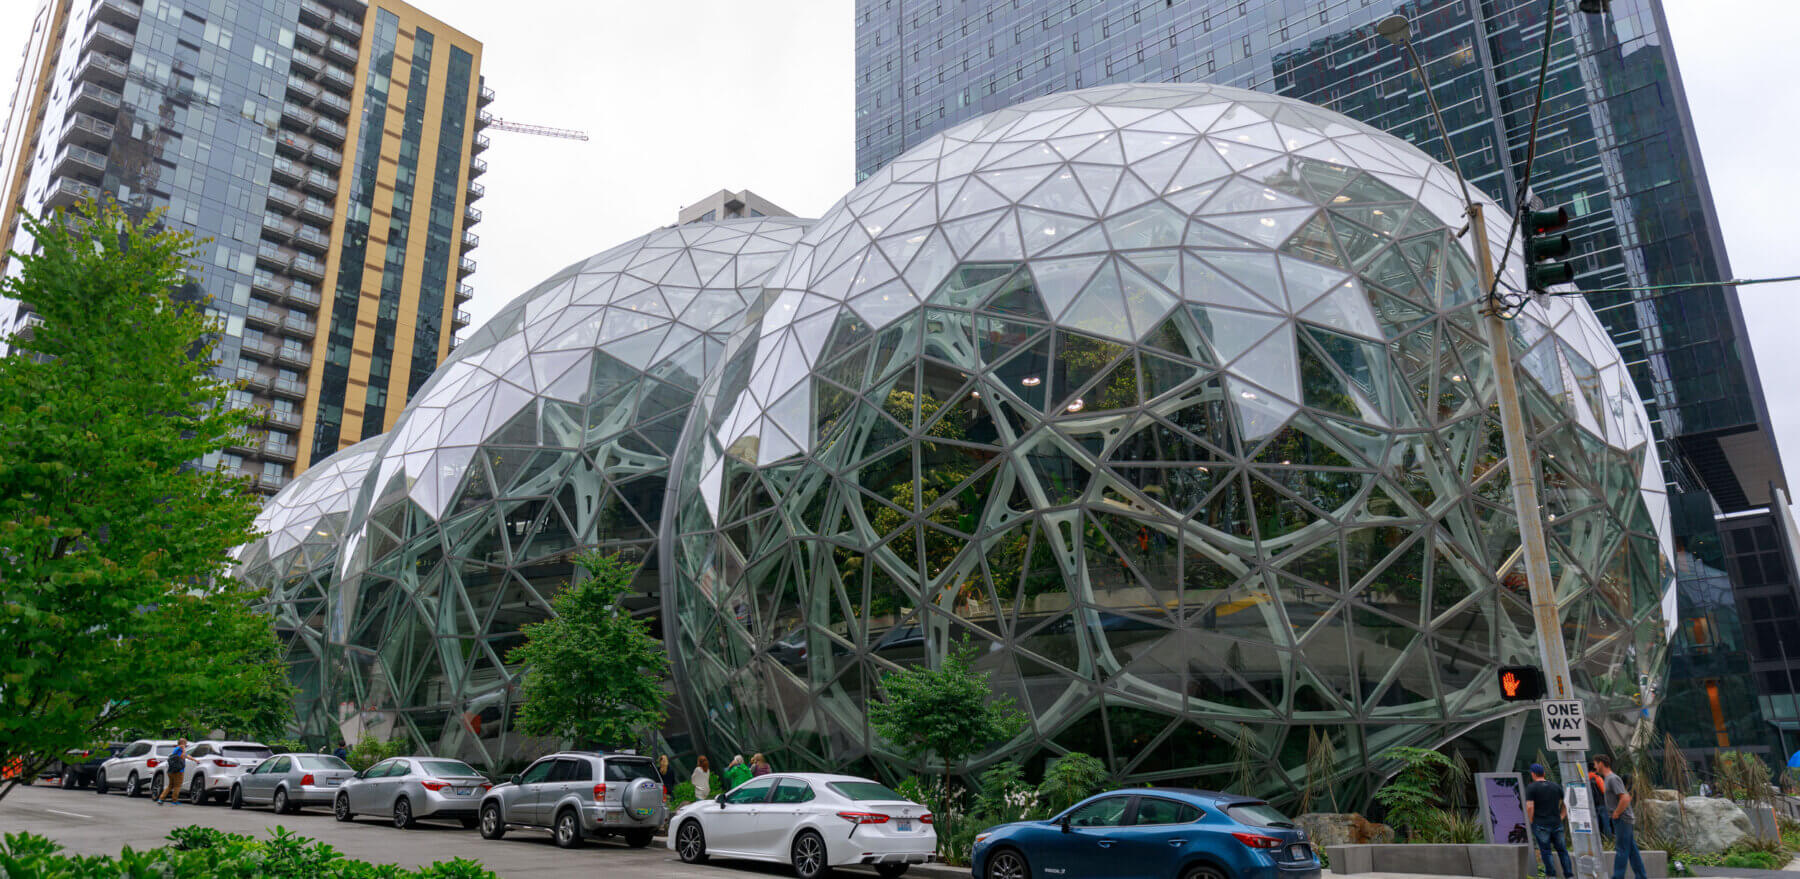 Seattle, Washington - June 30, 2018 : View of Amazon the Spheres at its Seattle headquarters and office tower in Seattle WA USA